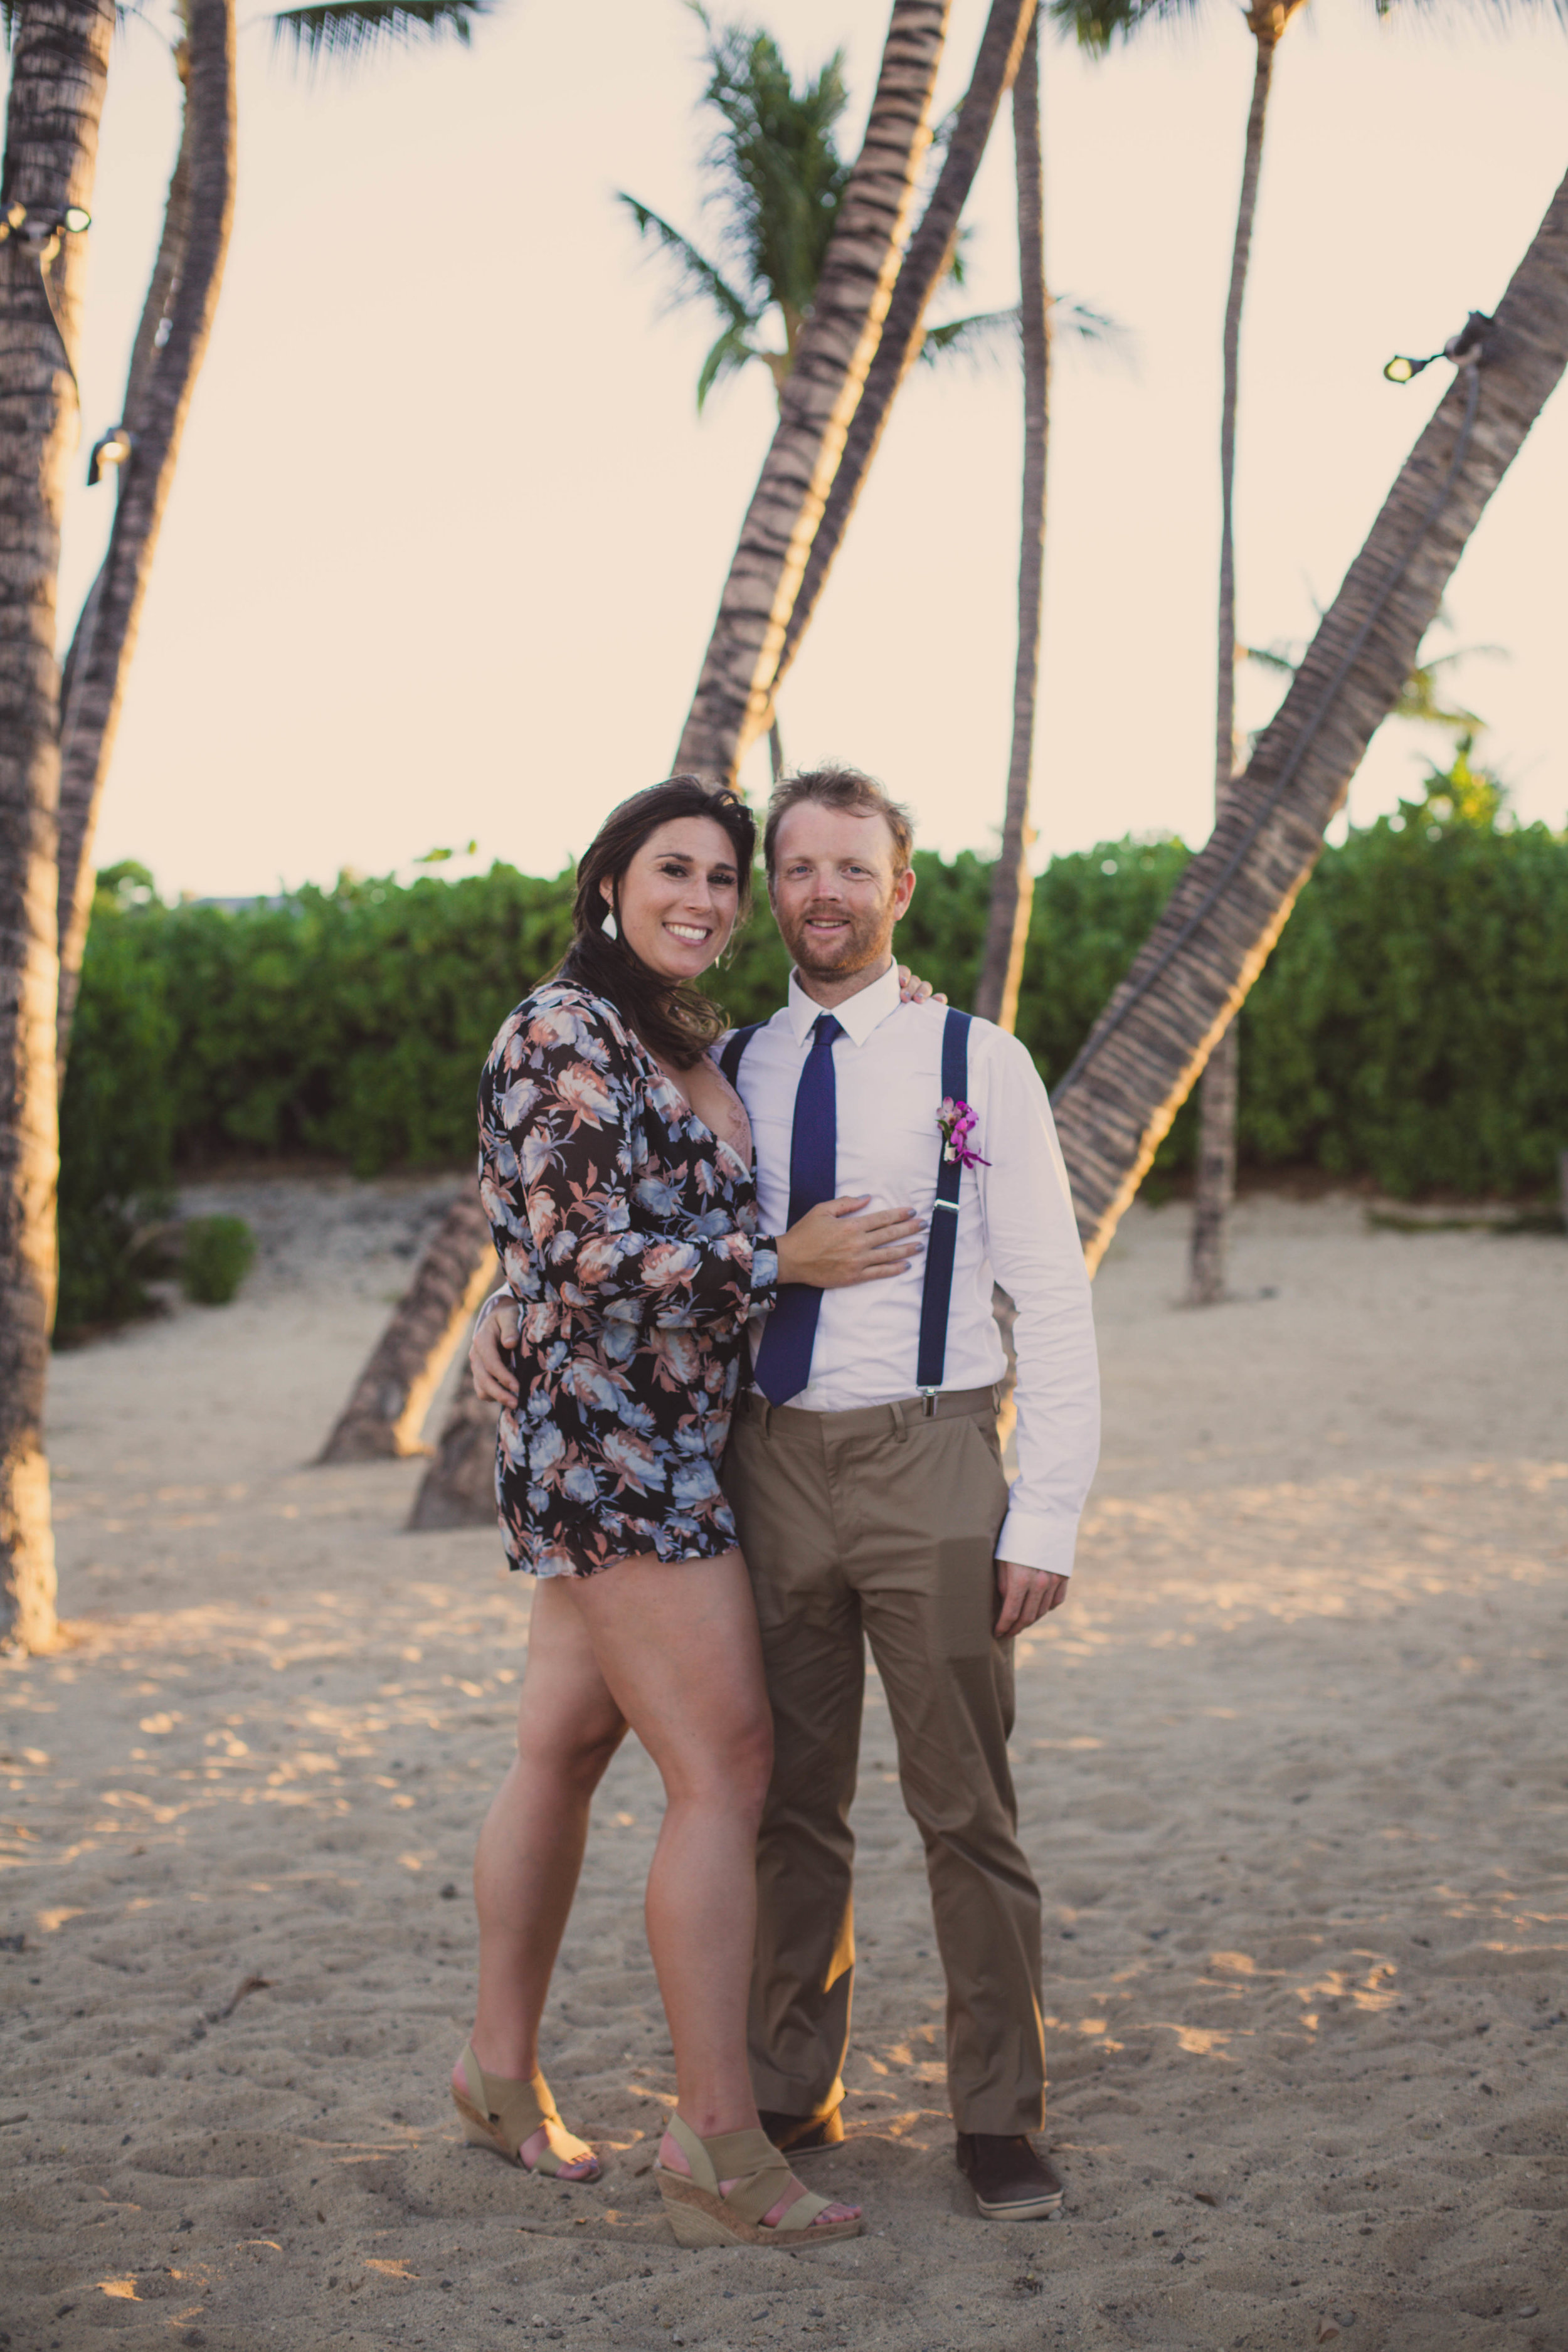 big island hawaii fairmont orchid beach wedding © kelilina photography 20170812183557-1.jpg